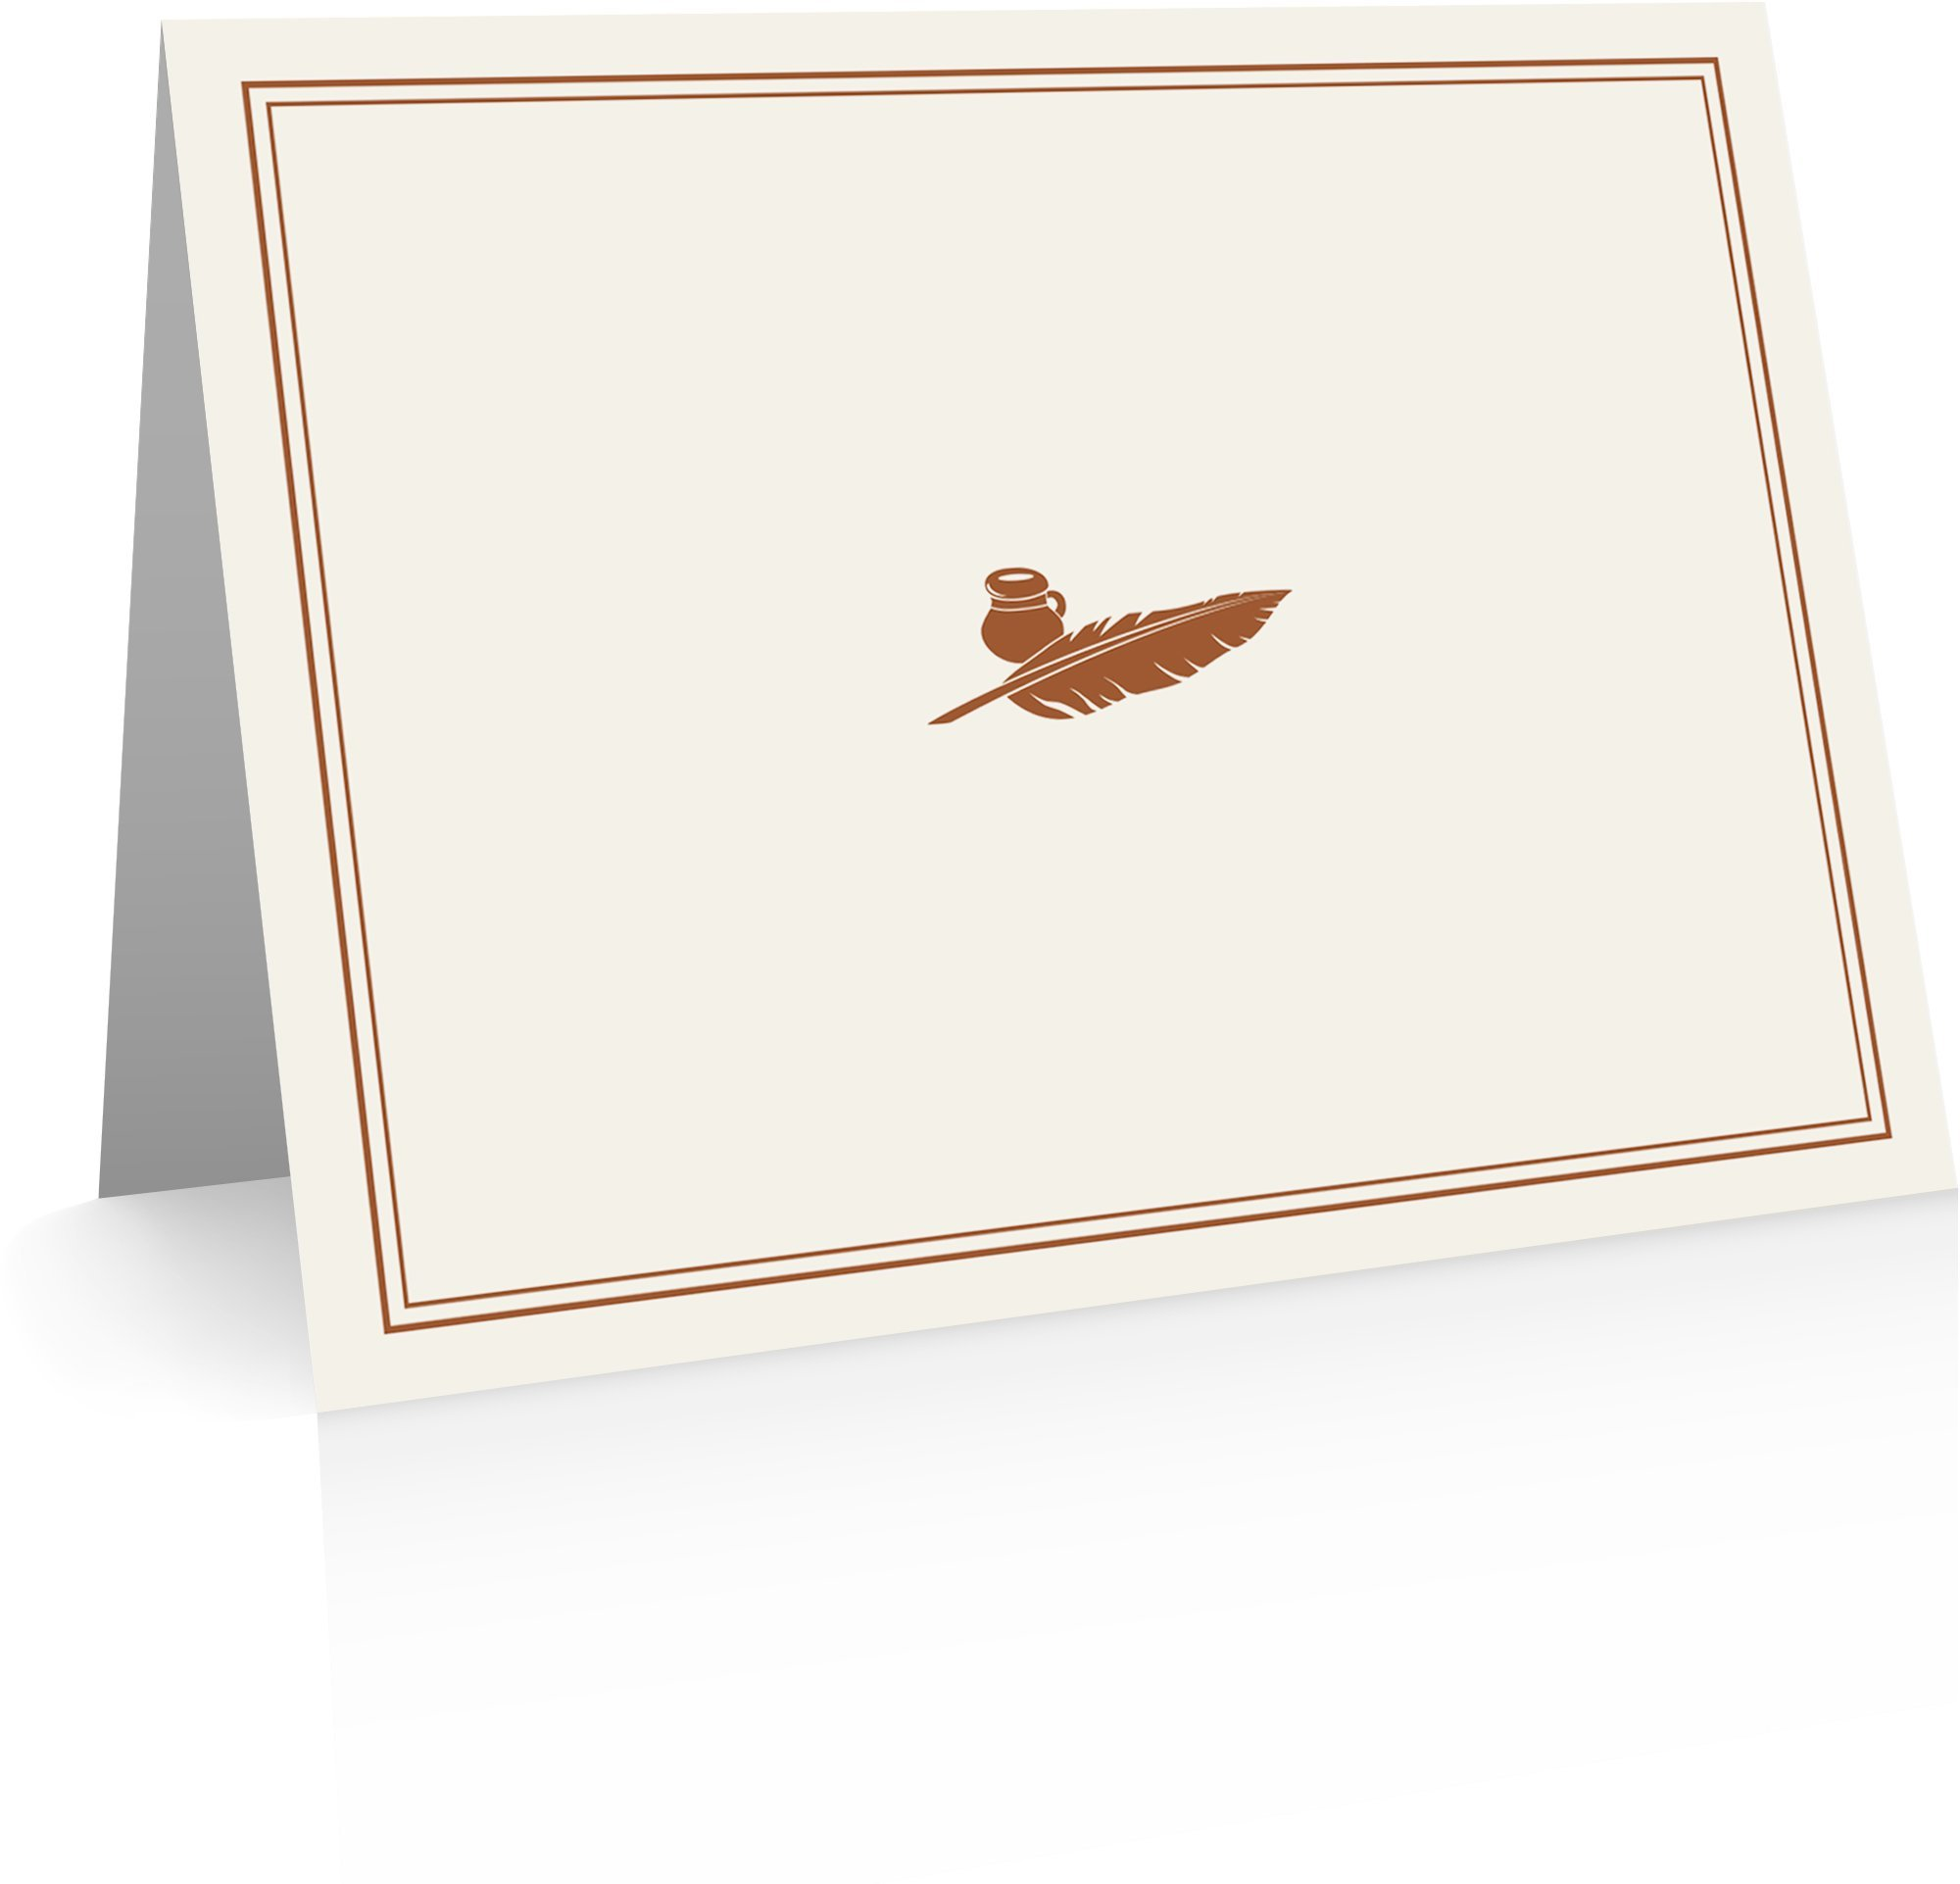 Quill Pen Stationery (24 Fold-over Cards and Envelopes) Quill Pen Notecards